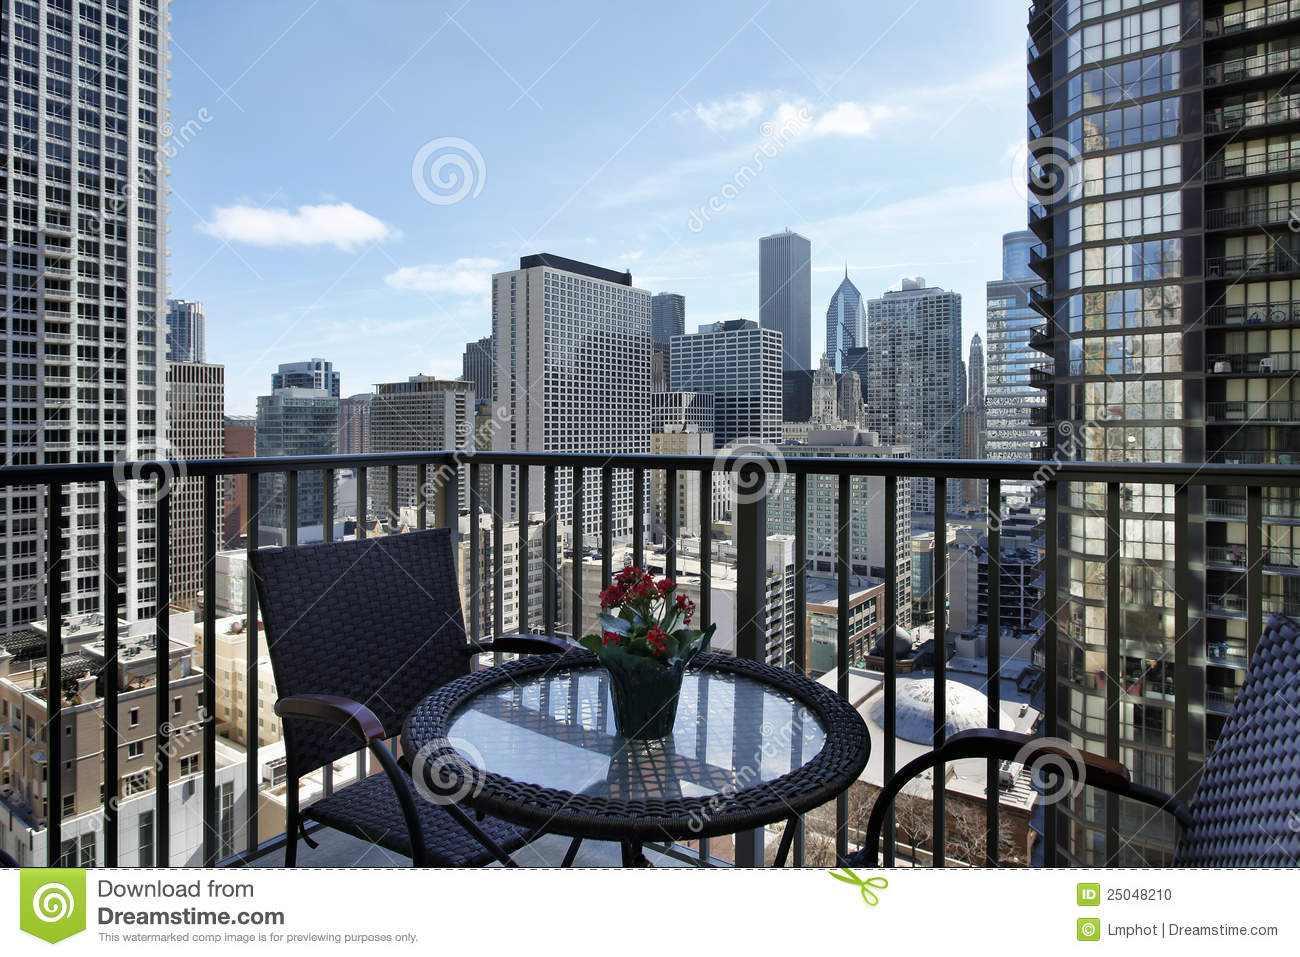 Balcony with a view stock image 21564649 for Balcony with view